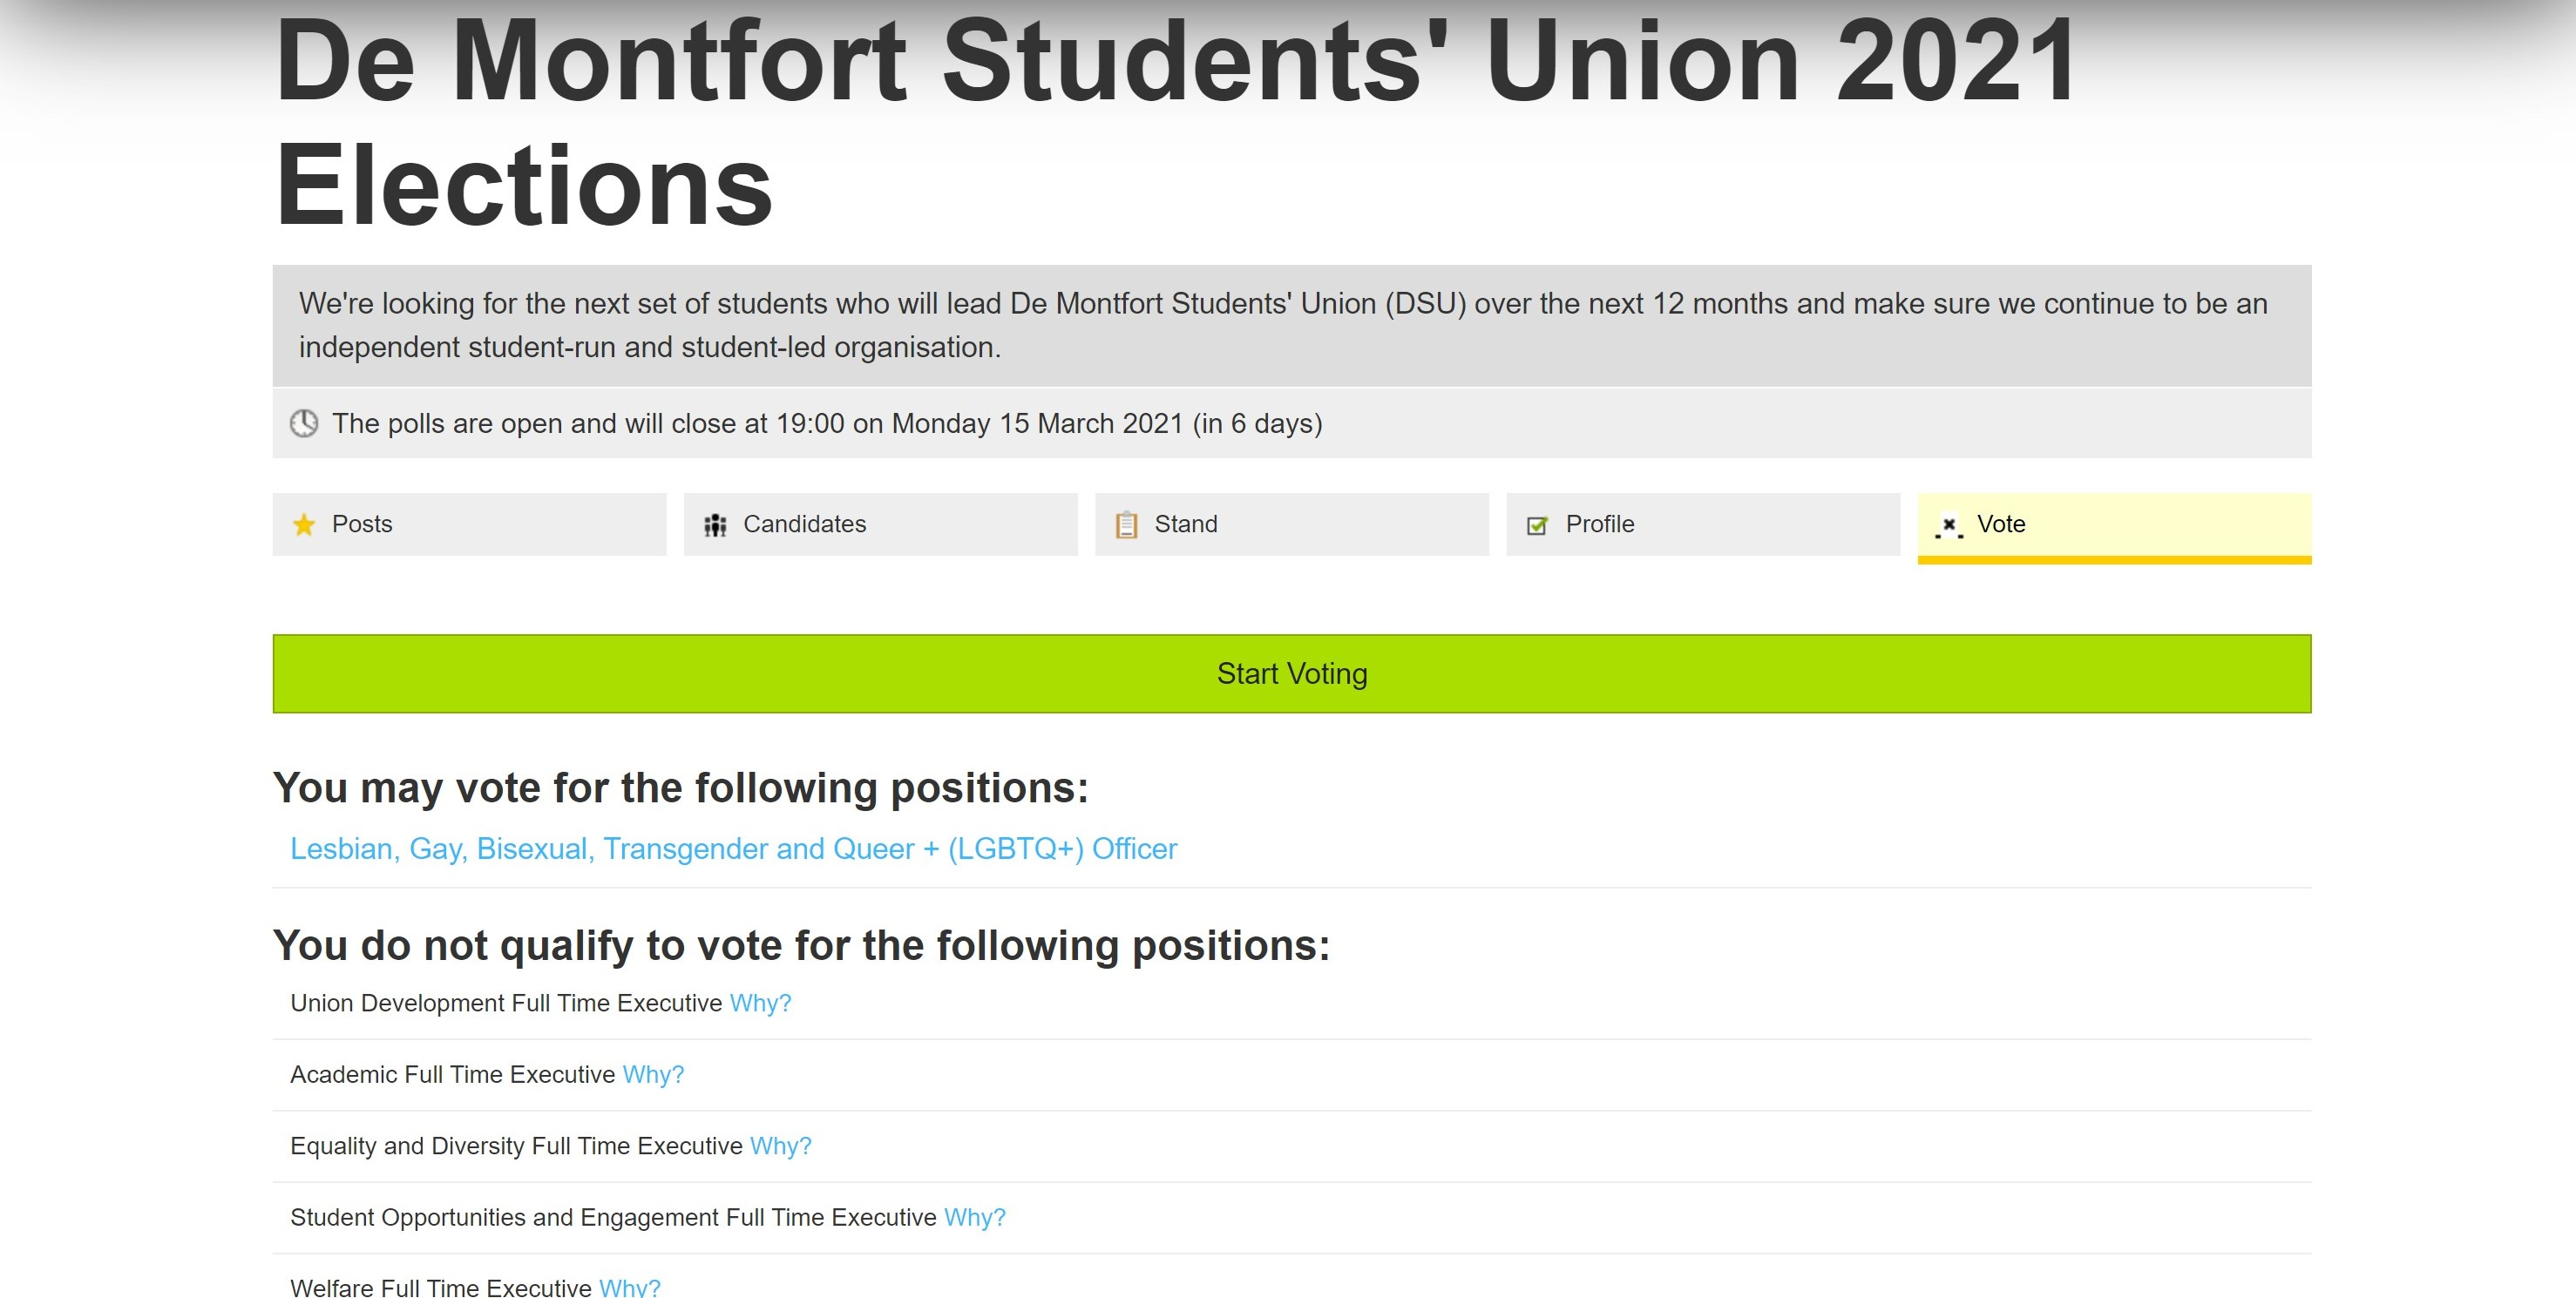 click the large green start voting button to begin the voting process